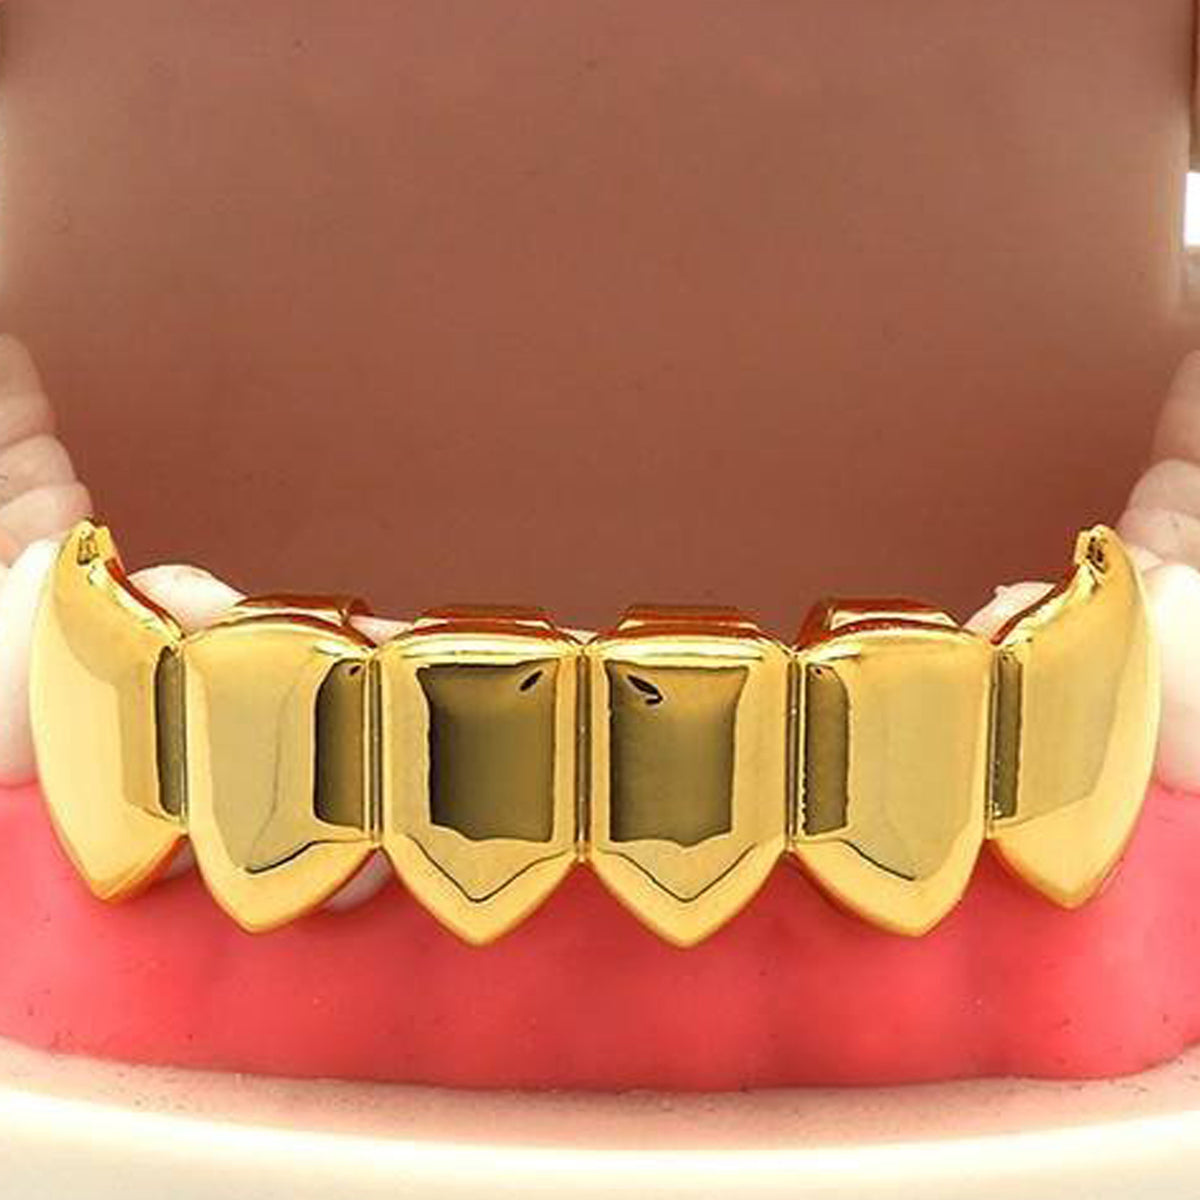 GOLD BOTTOM GRILLZ FANG